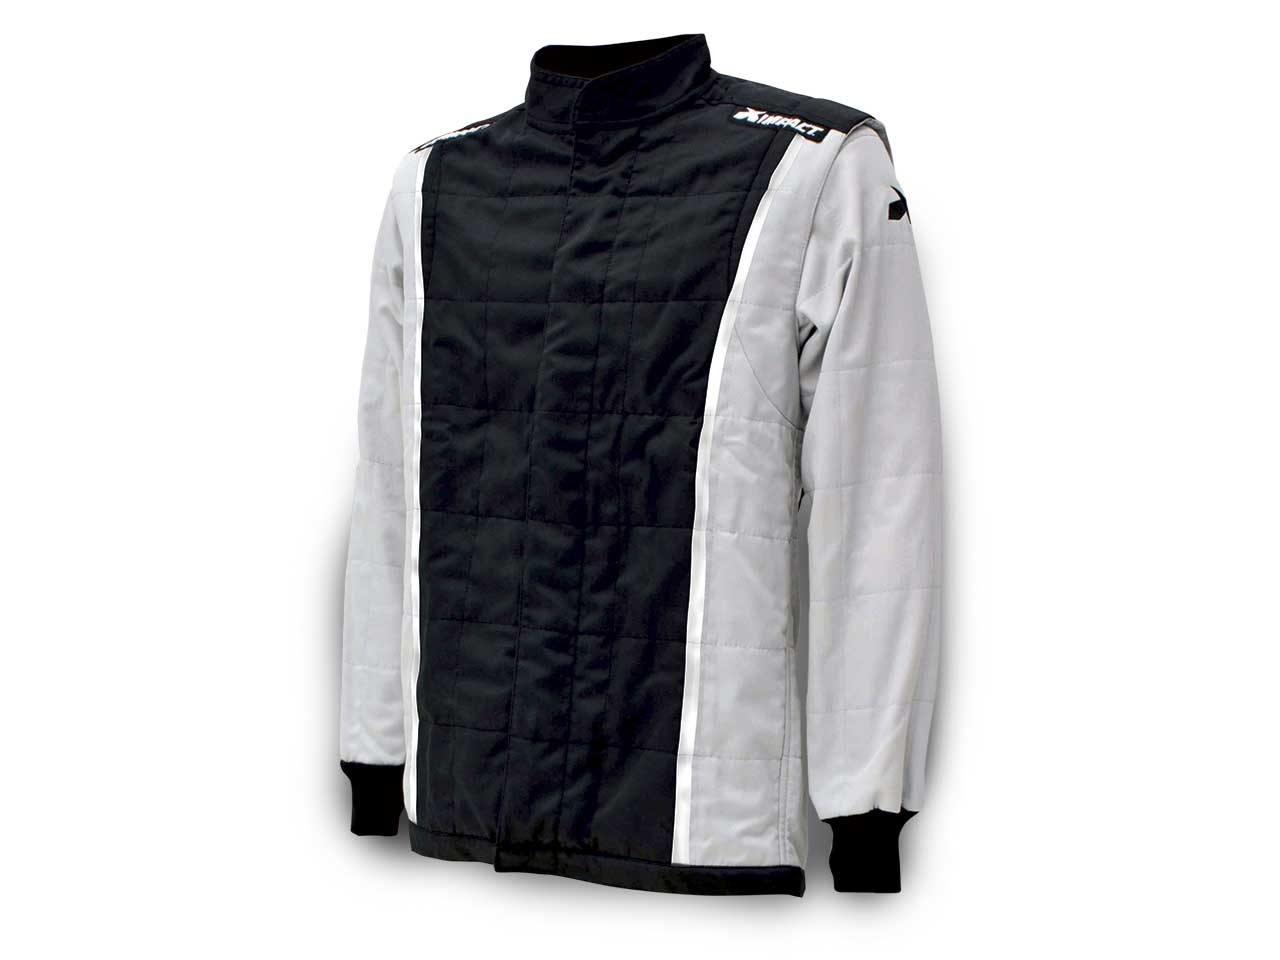 Impact Racer Jacket ONLY - BLACK with GRAY - Medium